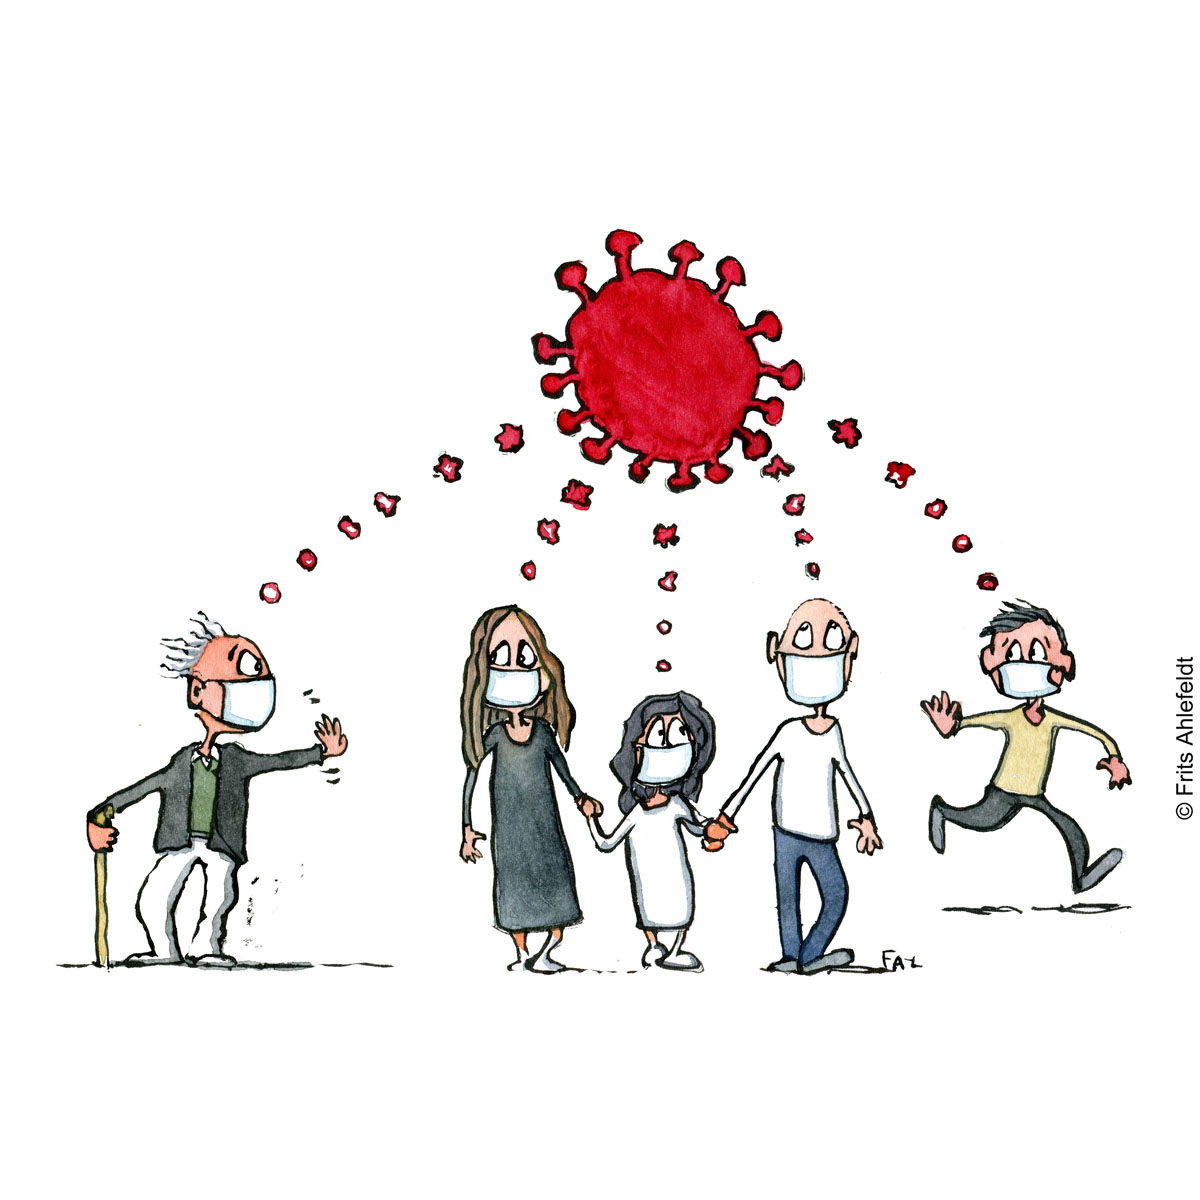 Drawing a group of people all thinking of virus, that becomes one bubble. Psychology illustration by Frits Ahlefeldt